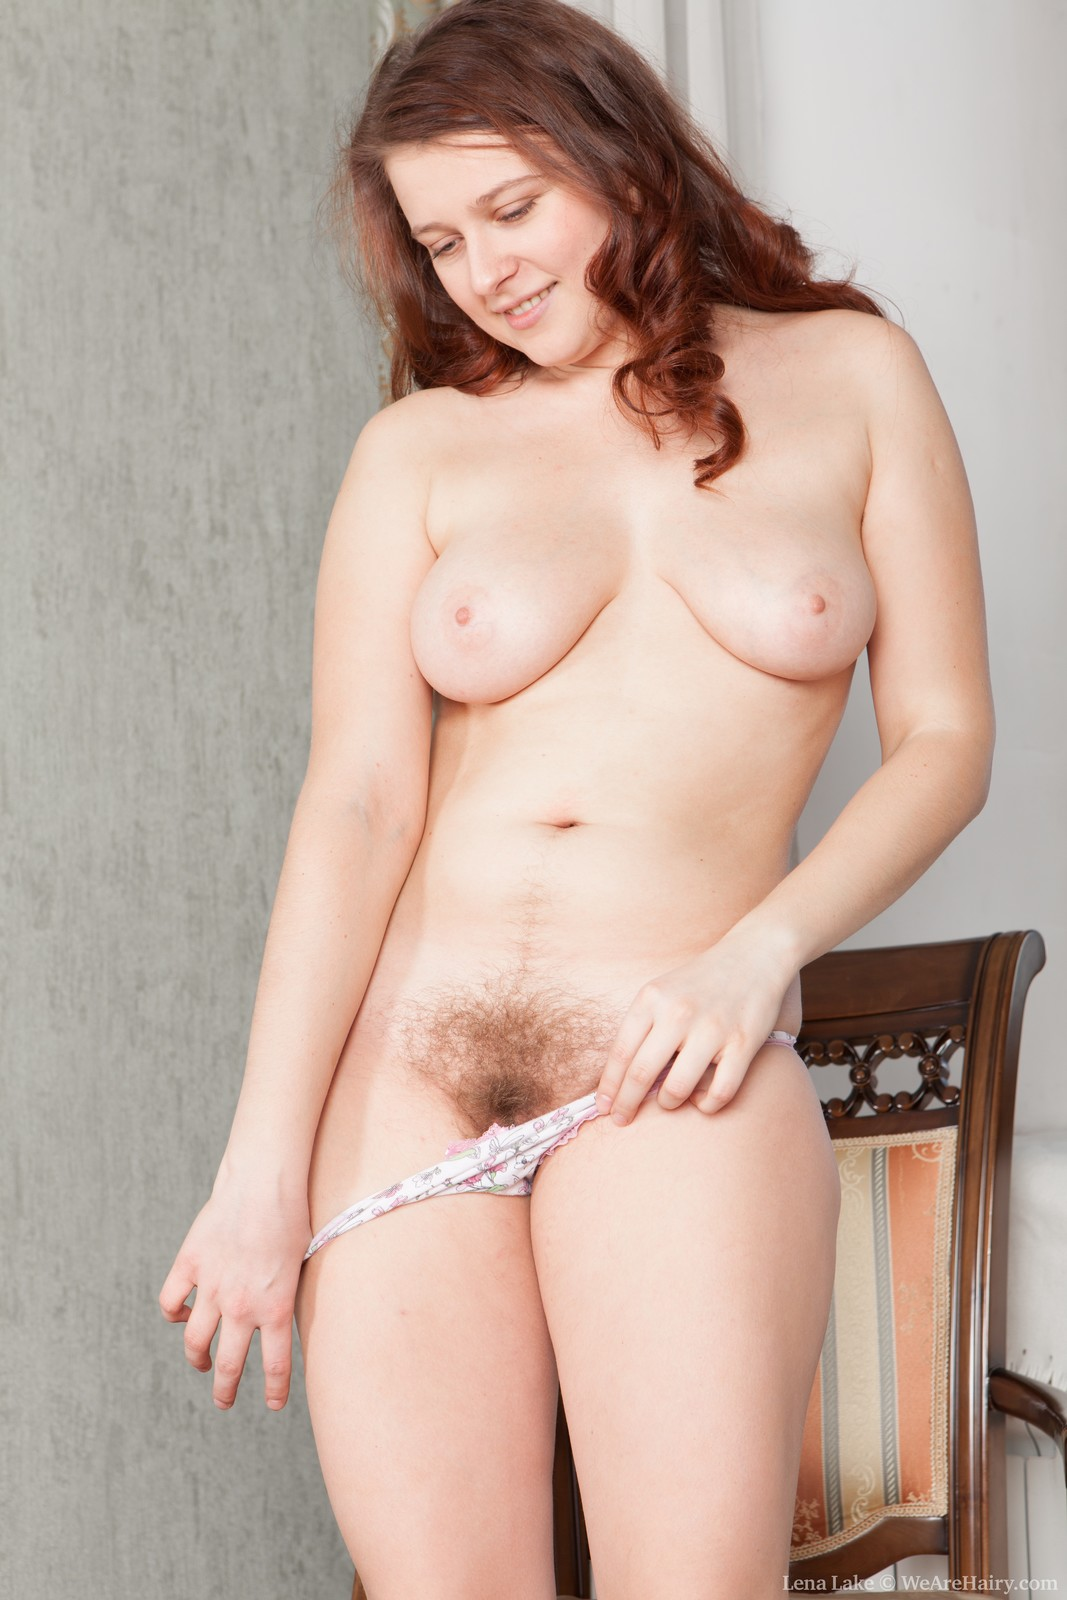 Hairy female pubic hair